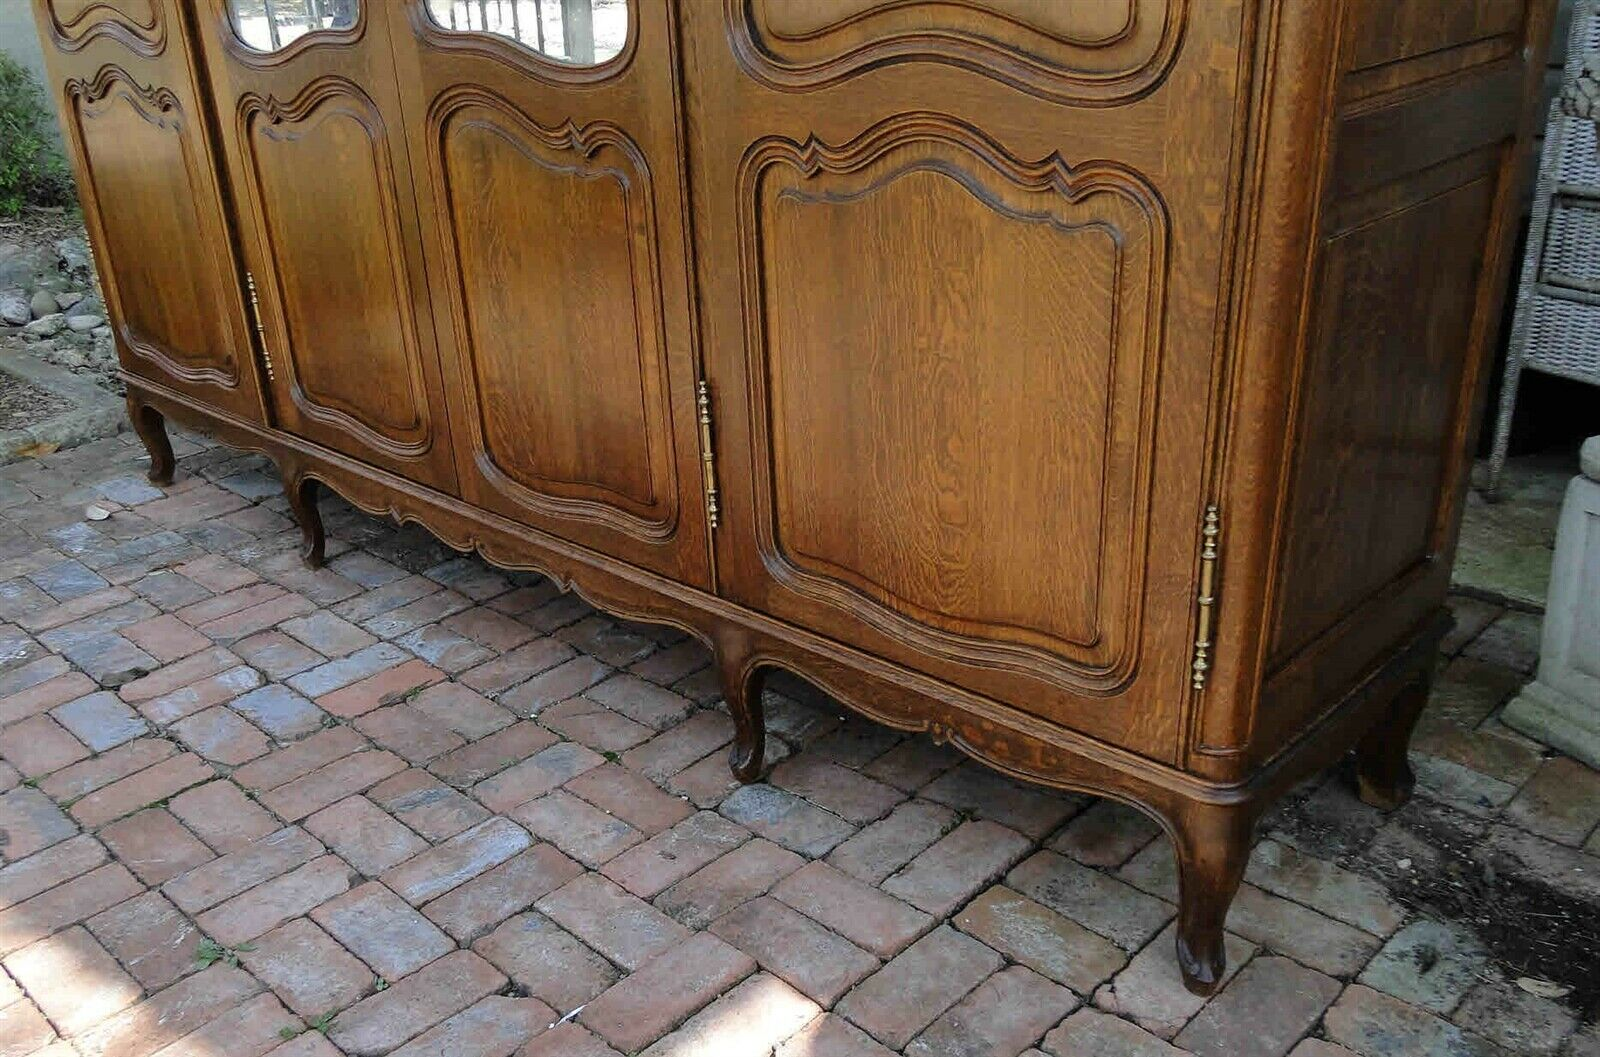 Antique French Country Wardrobe Armoire 4 door shelves hanging rod tiger Oak